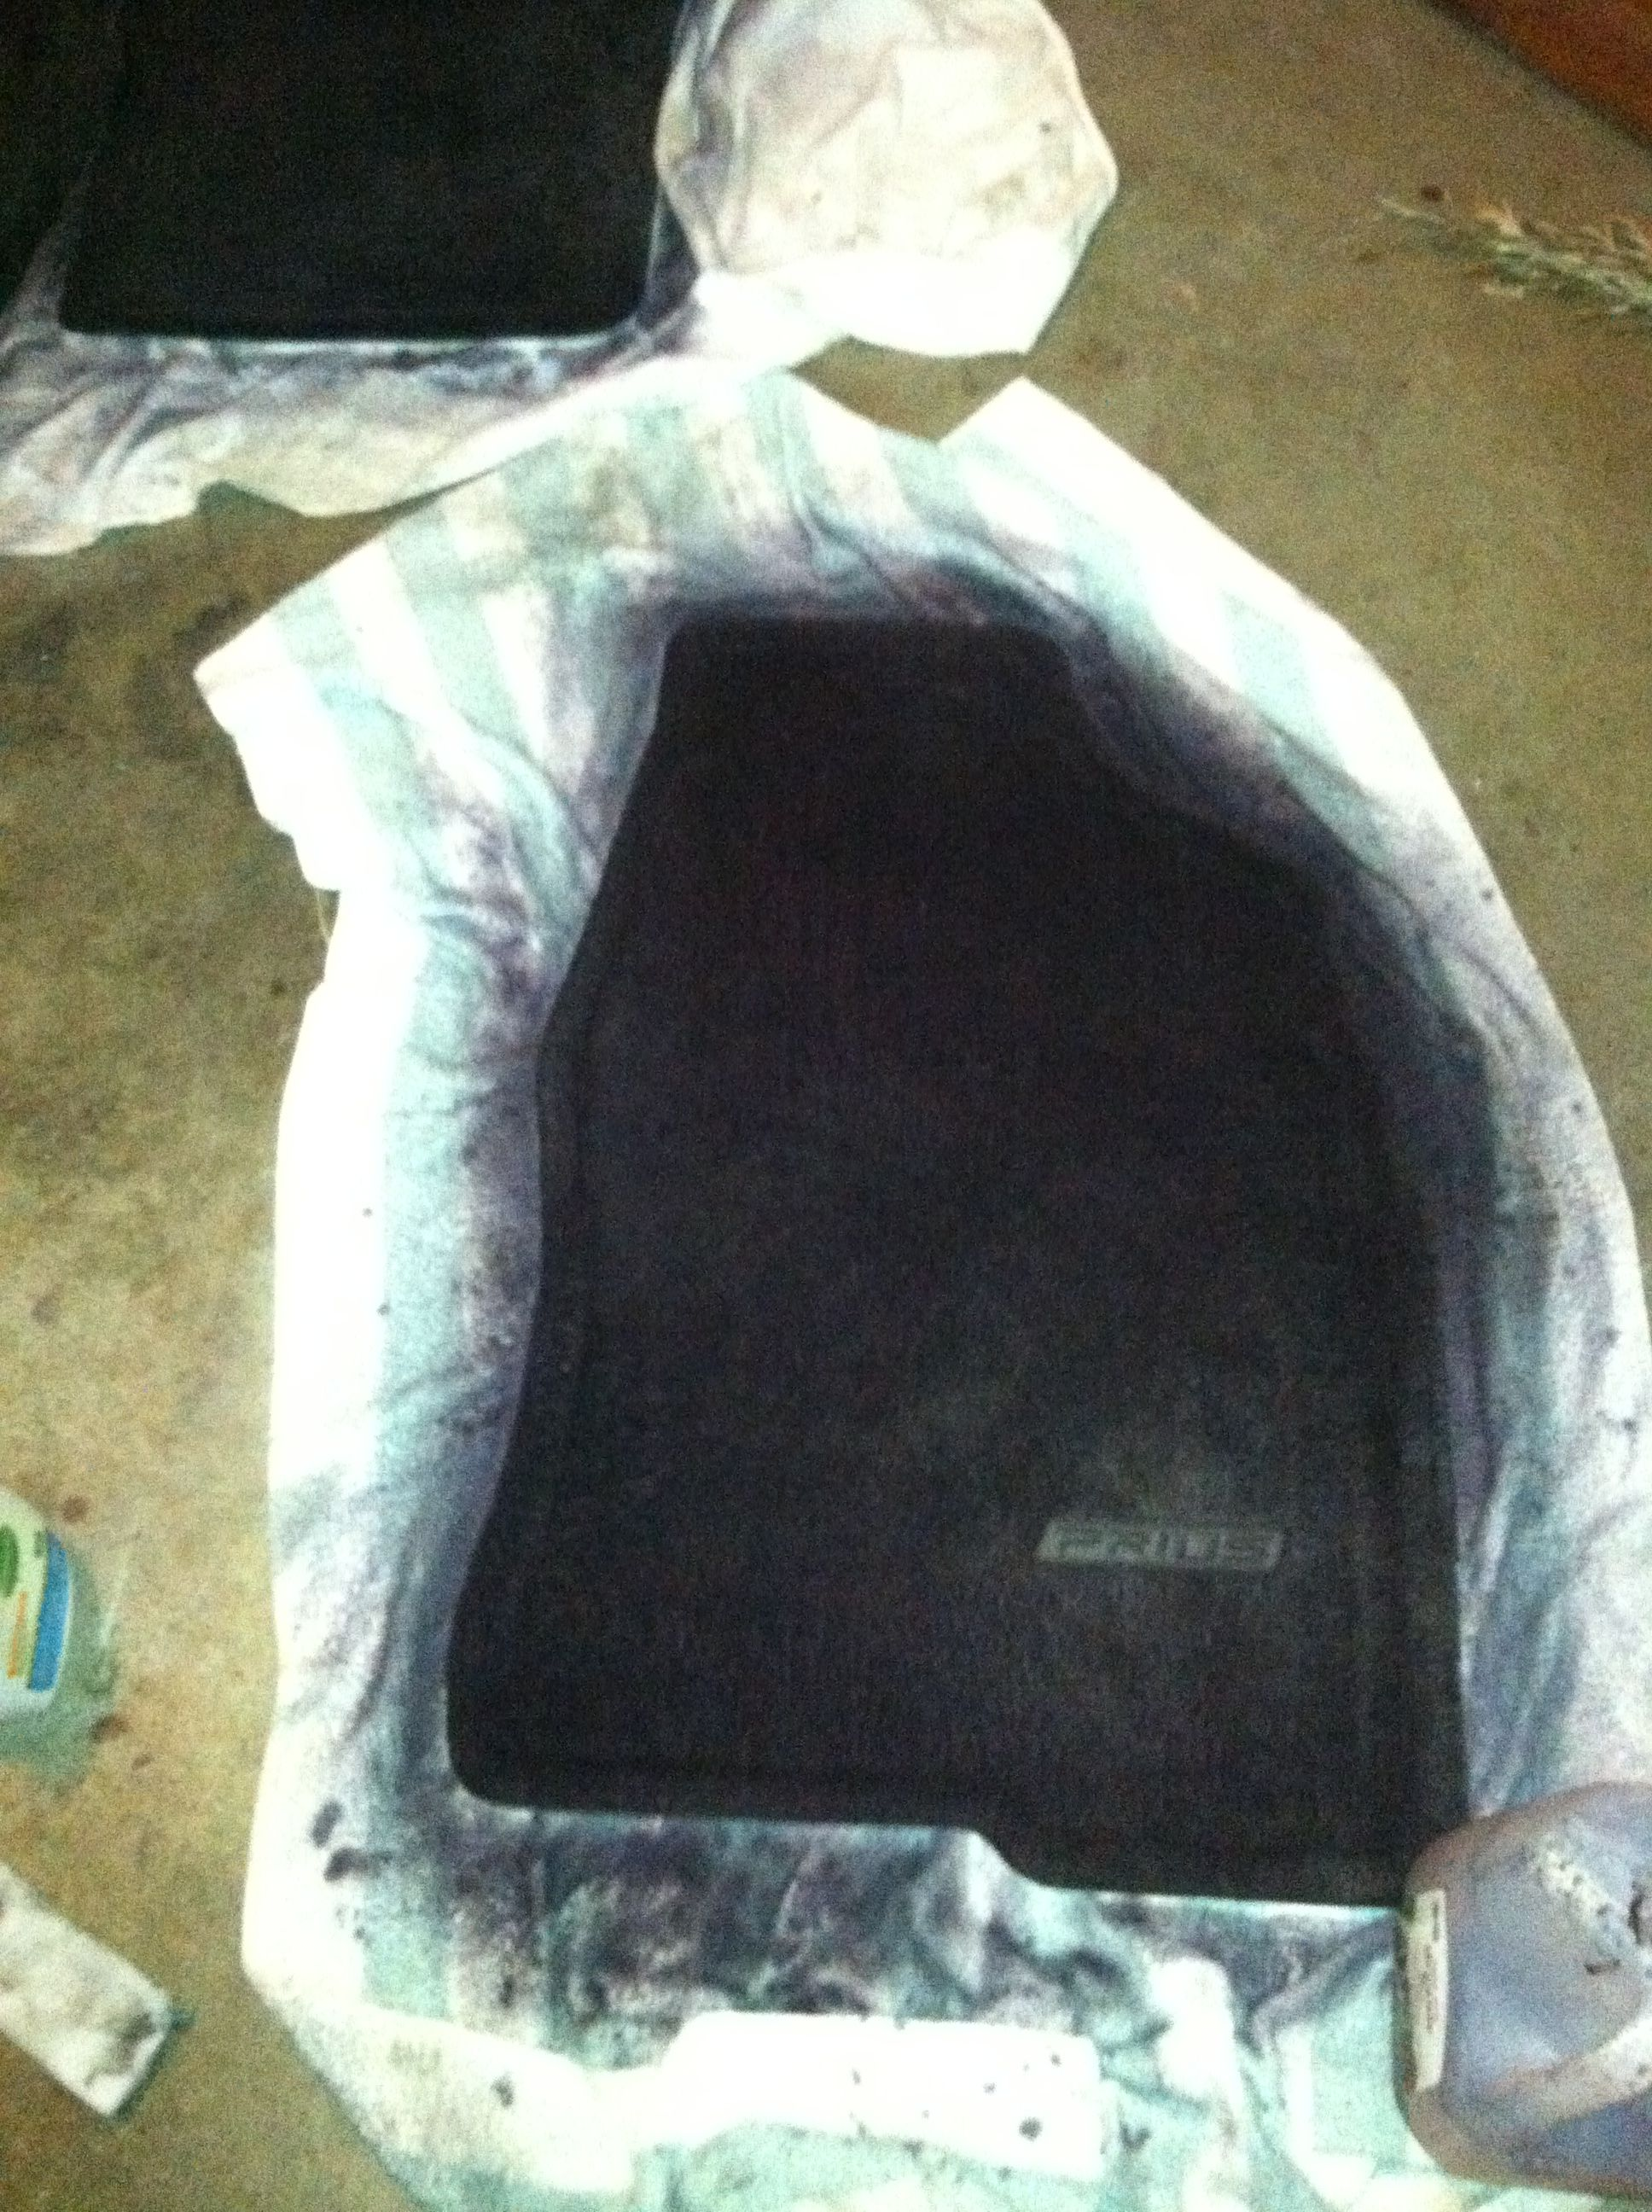 Dyed My Car Carpet With Rit Dye 1st Cleaned Them 2nd